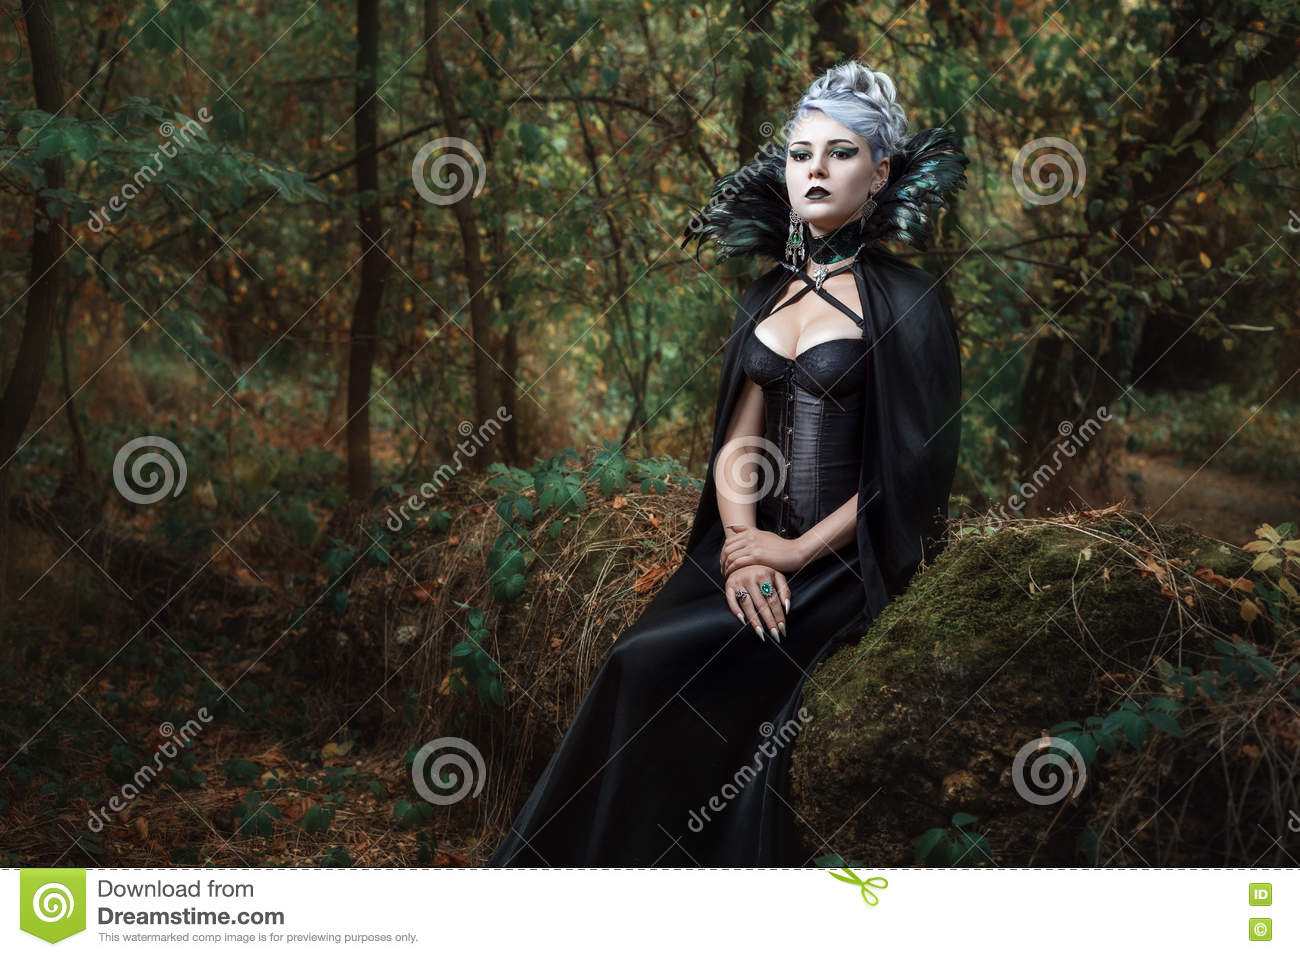 Gothic girl in the forest.